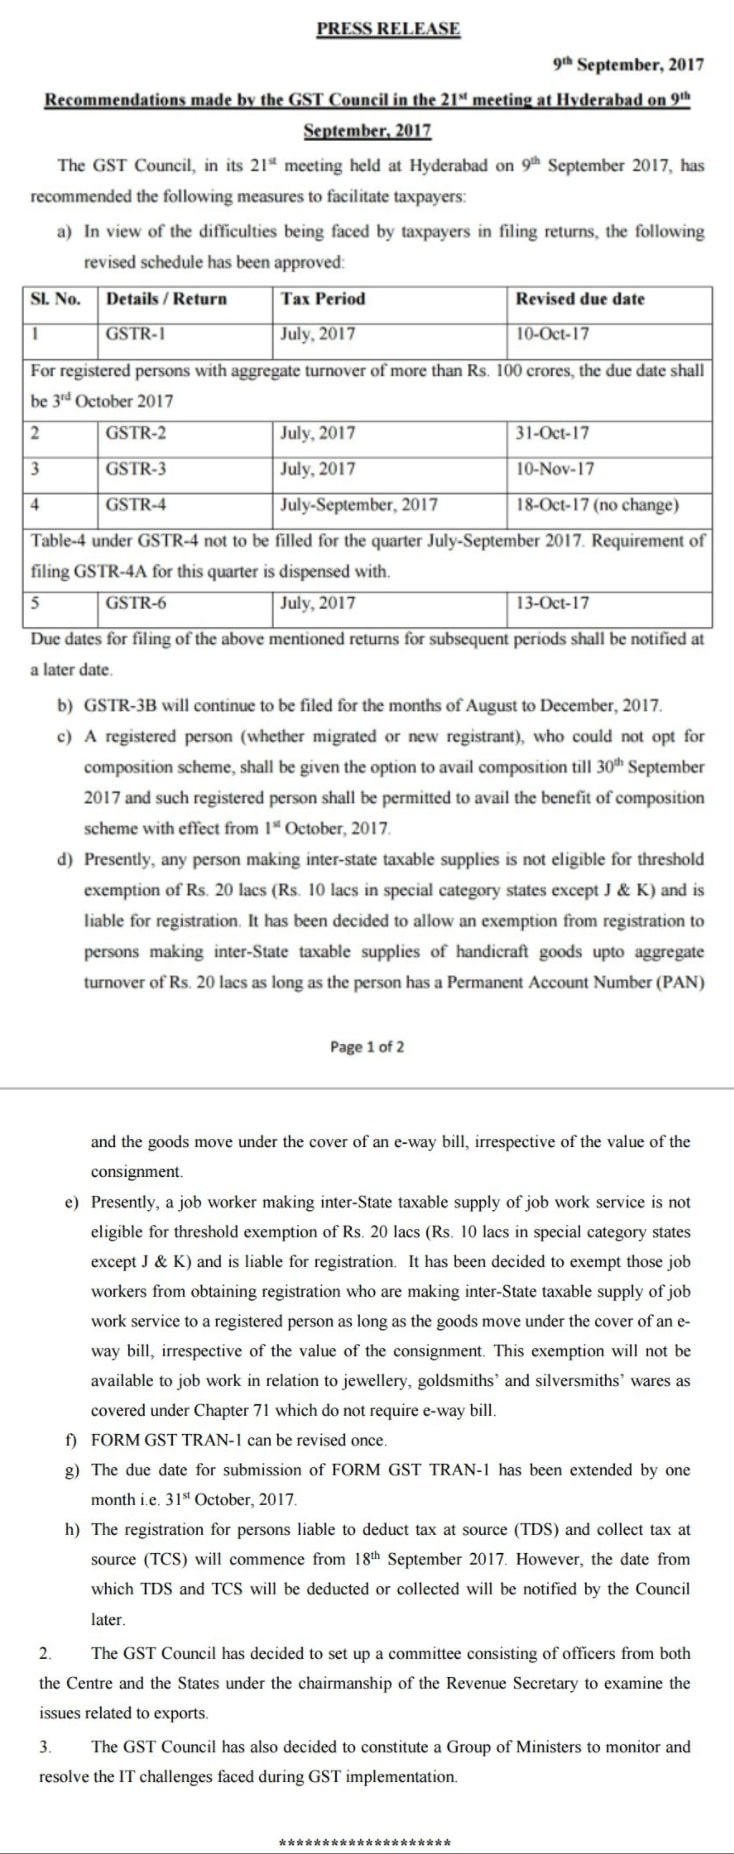 GST Council Press Release 9 September 2017